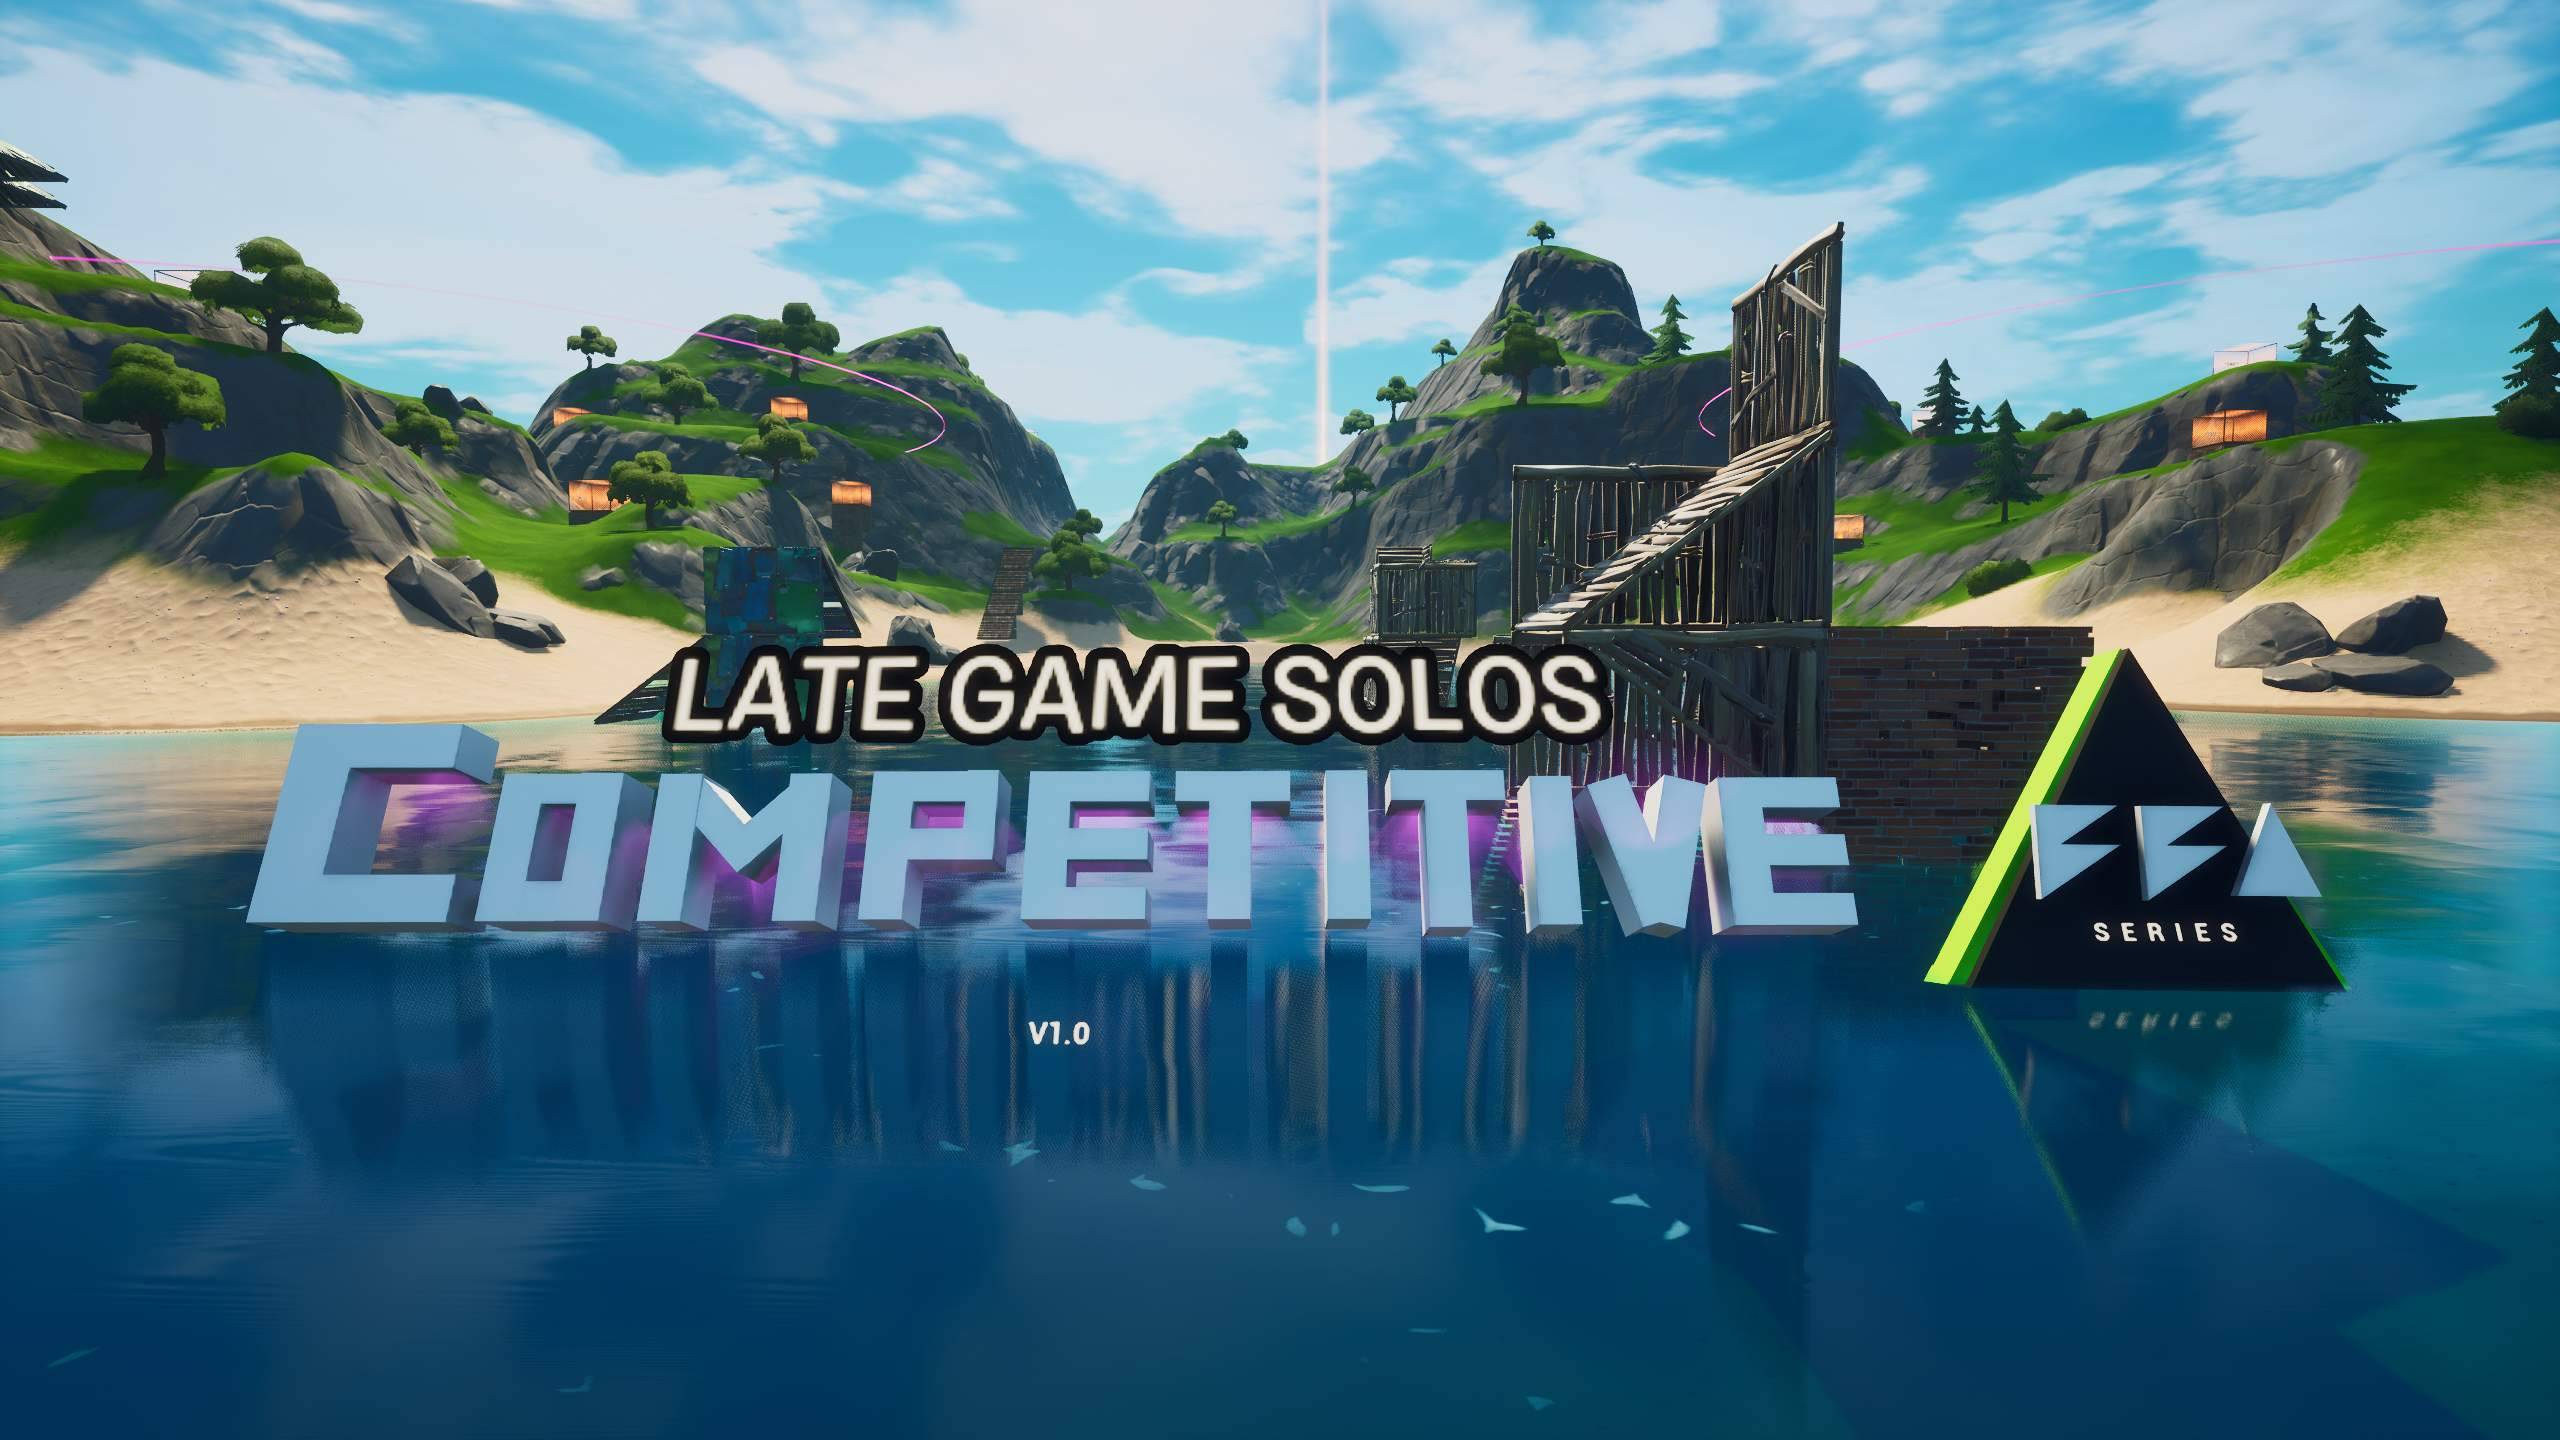 LATE GAME SOLOS - HIGH FPS FFA